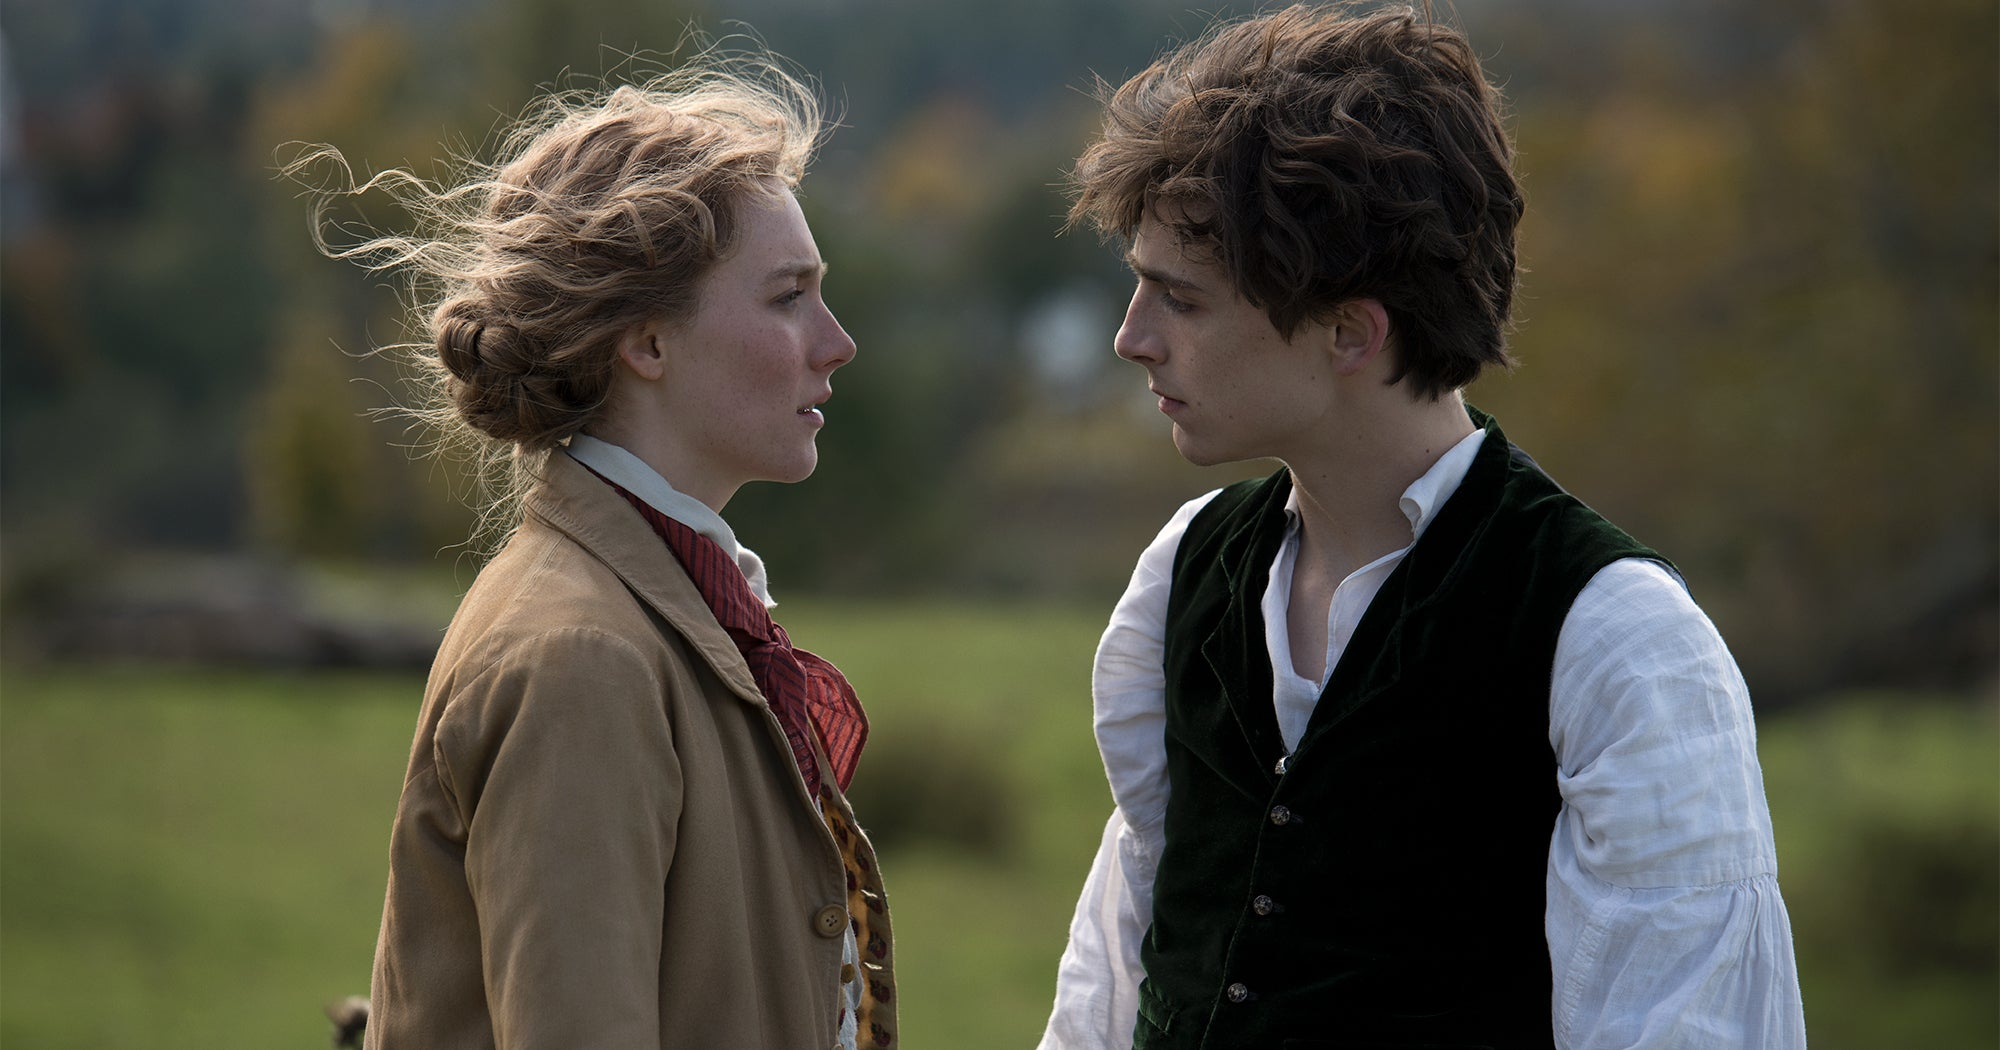 Timothée Chalamet & Saoirse Ronan Know They Have A Special Connection